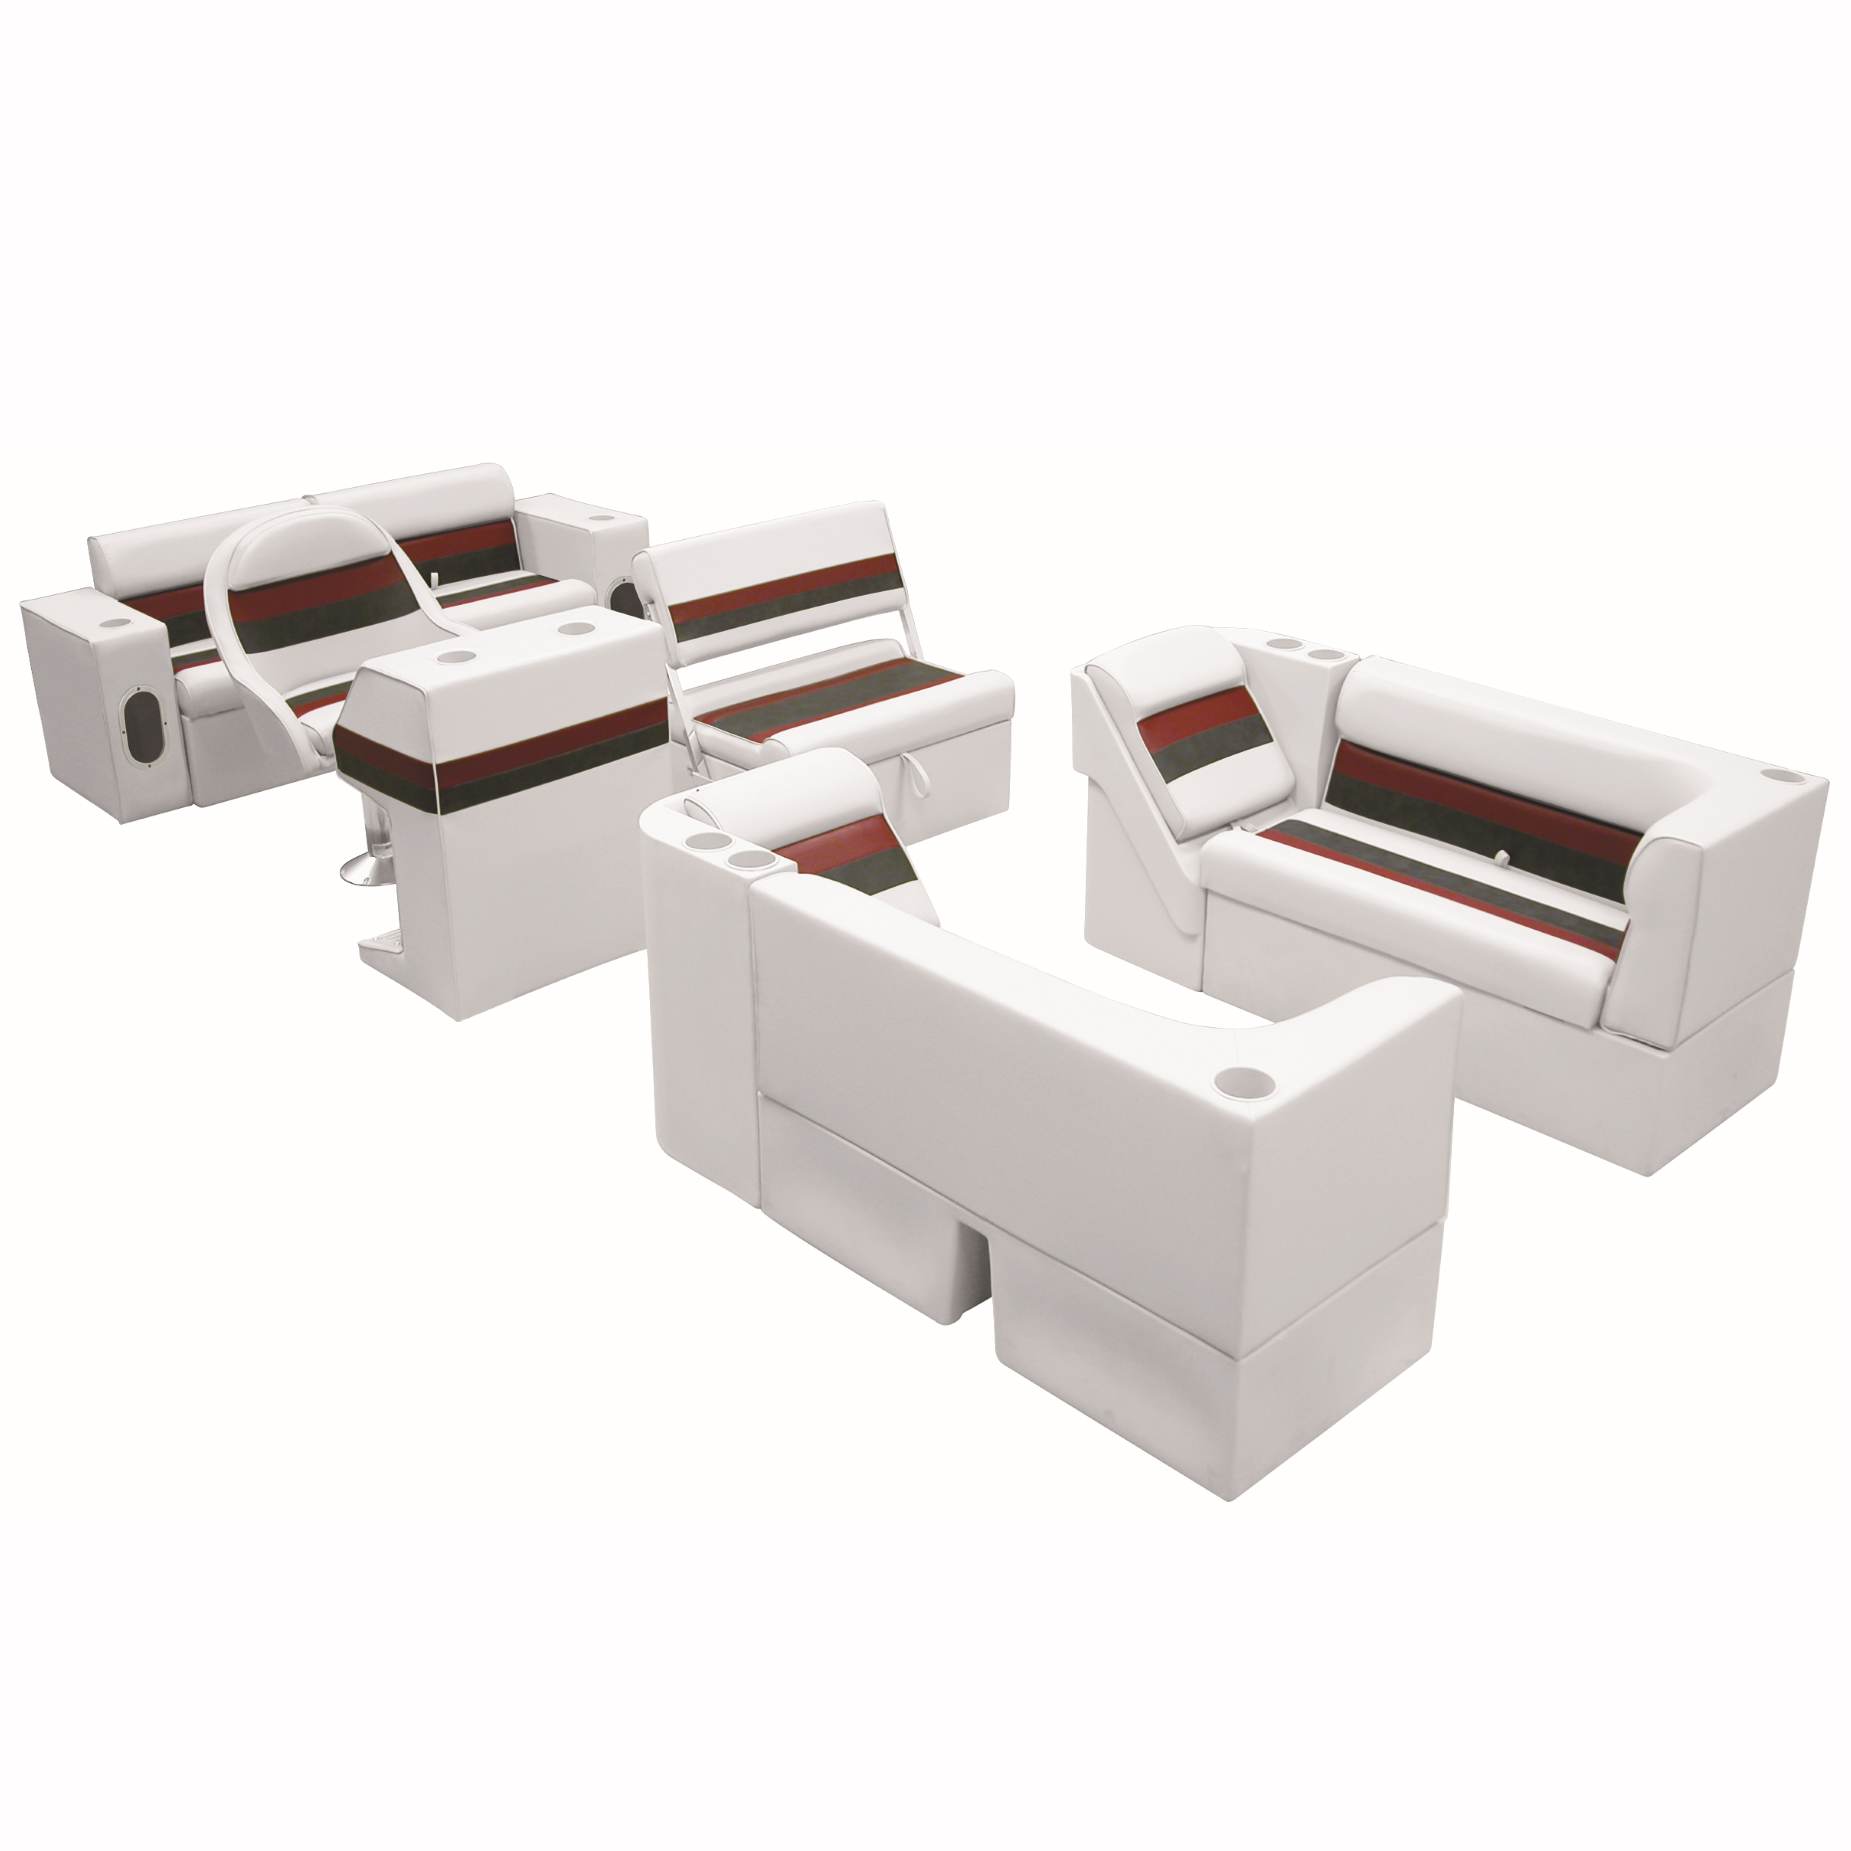 Deluxe Pontoon Furniture w/Classic Base - Complete Boat Package E, White/Red/Cha